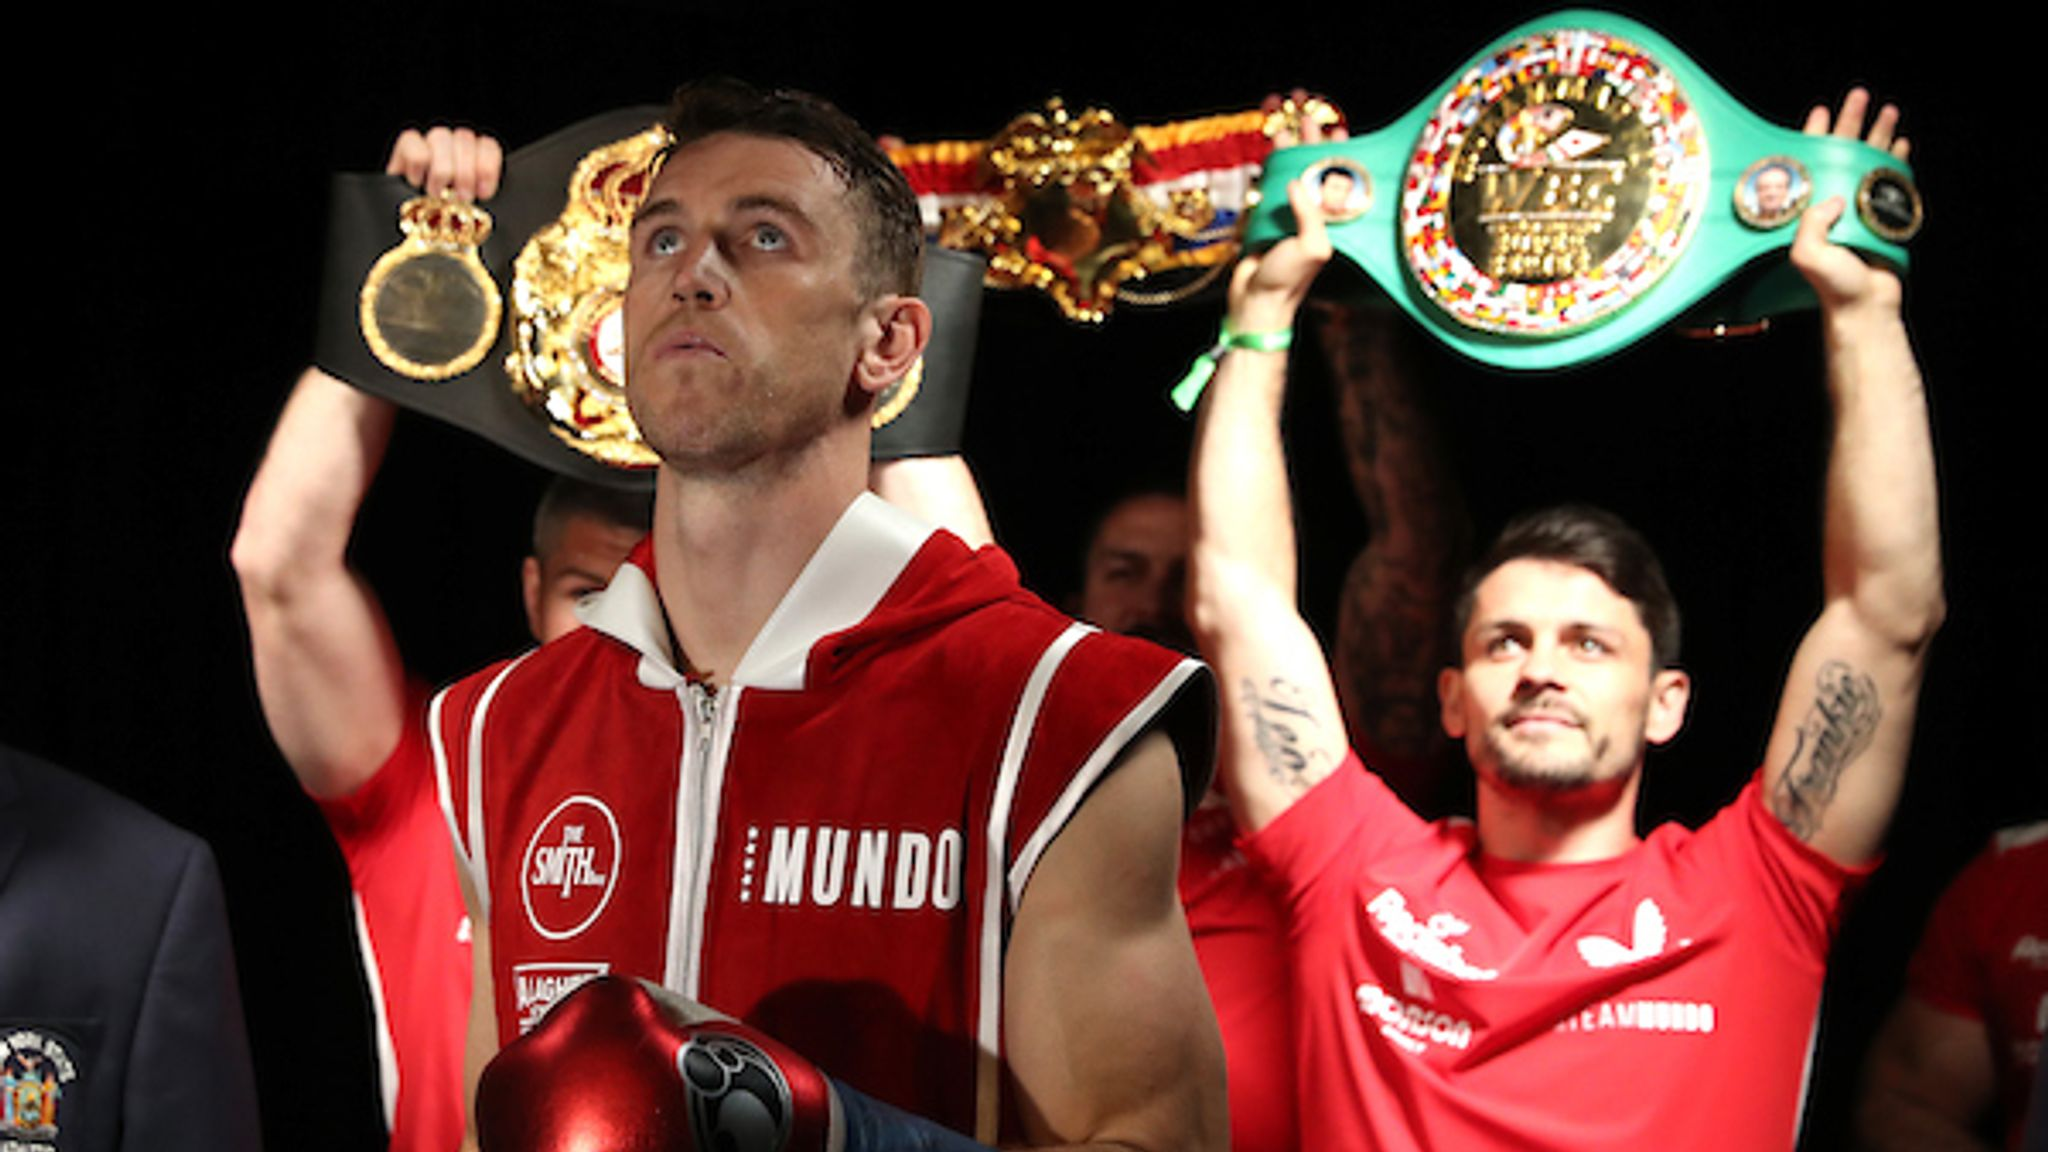 Can Callum Smith become a British great after sensational showing at Madison Square Garden?